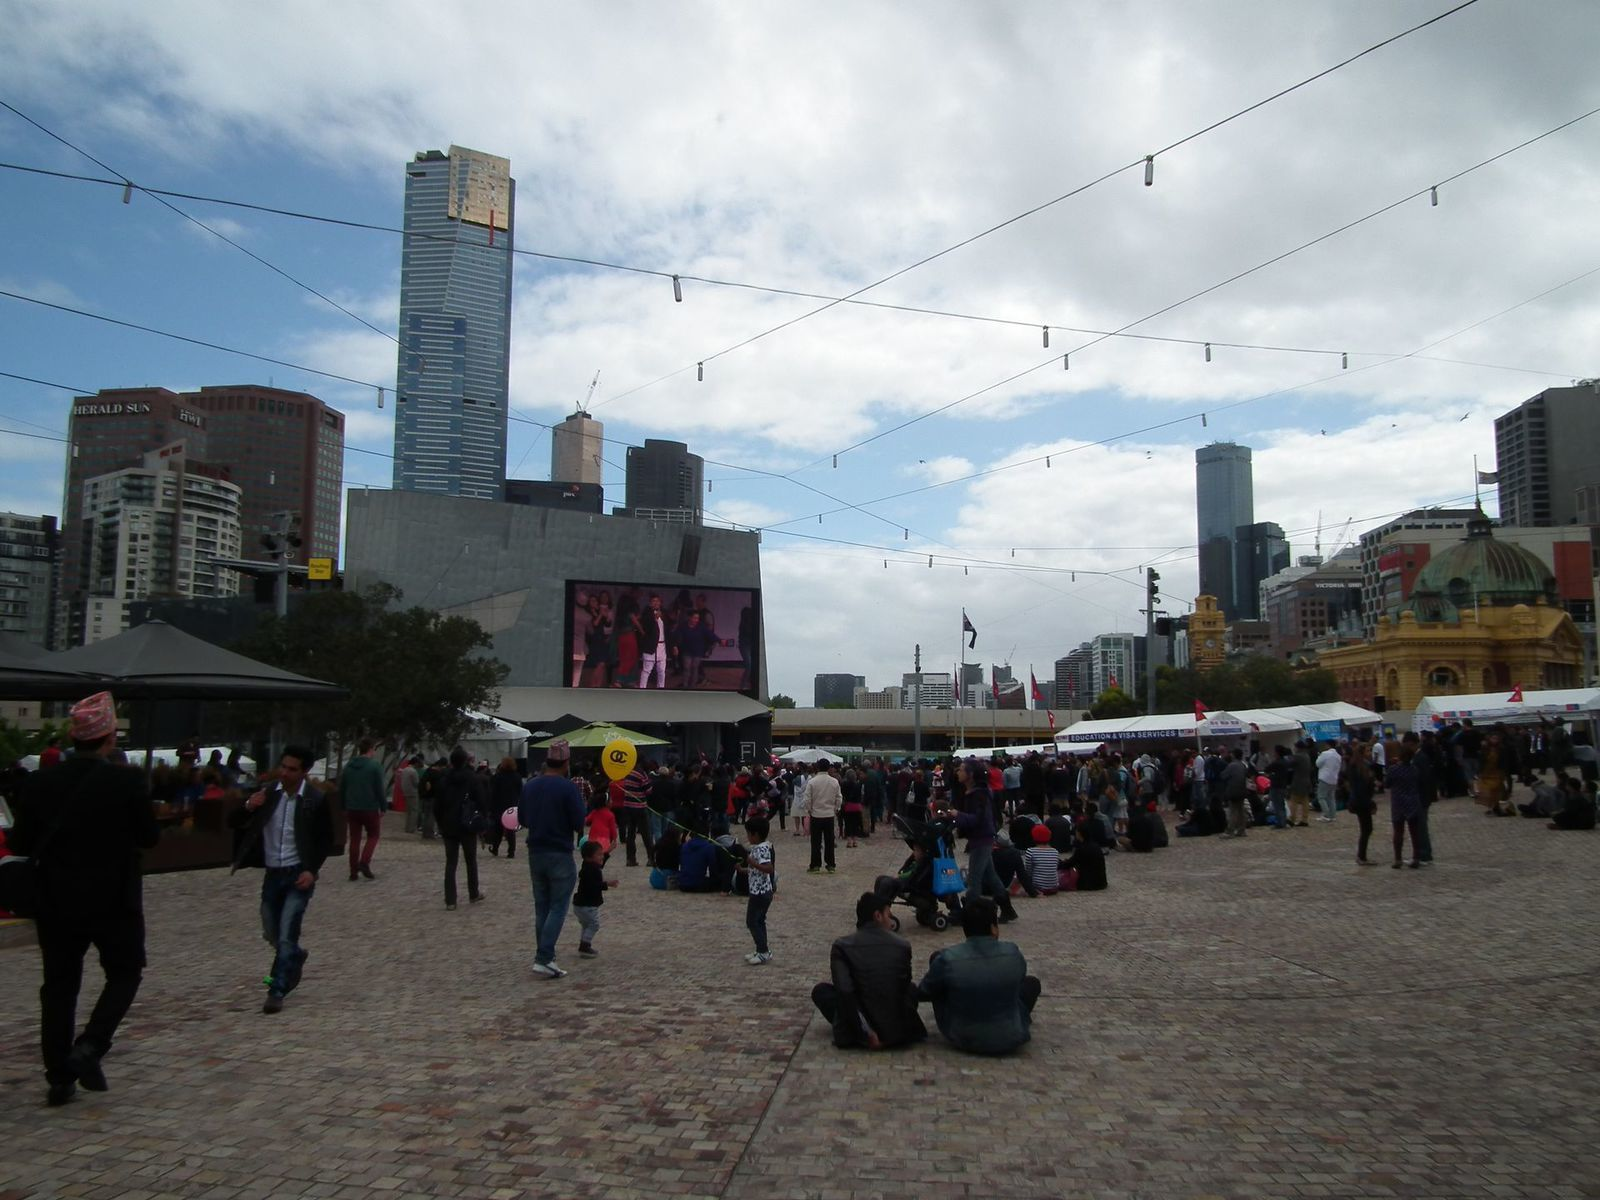 Heatcote, blue wren, fed square, view of Melbourne